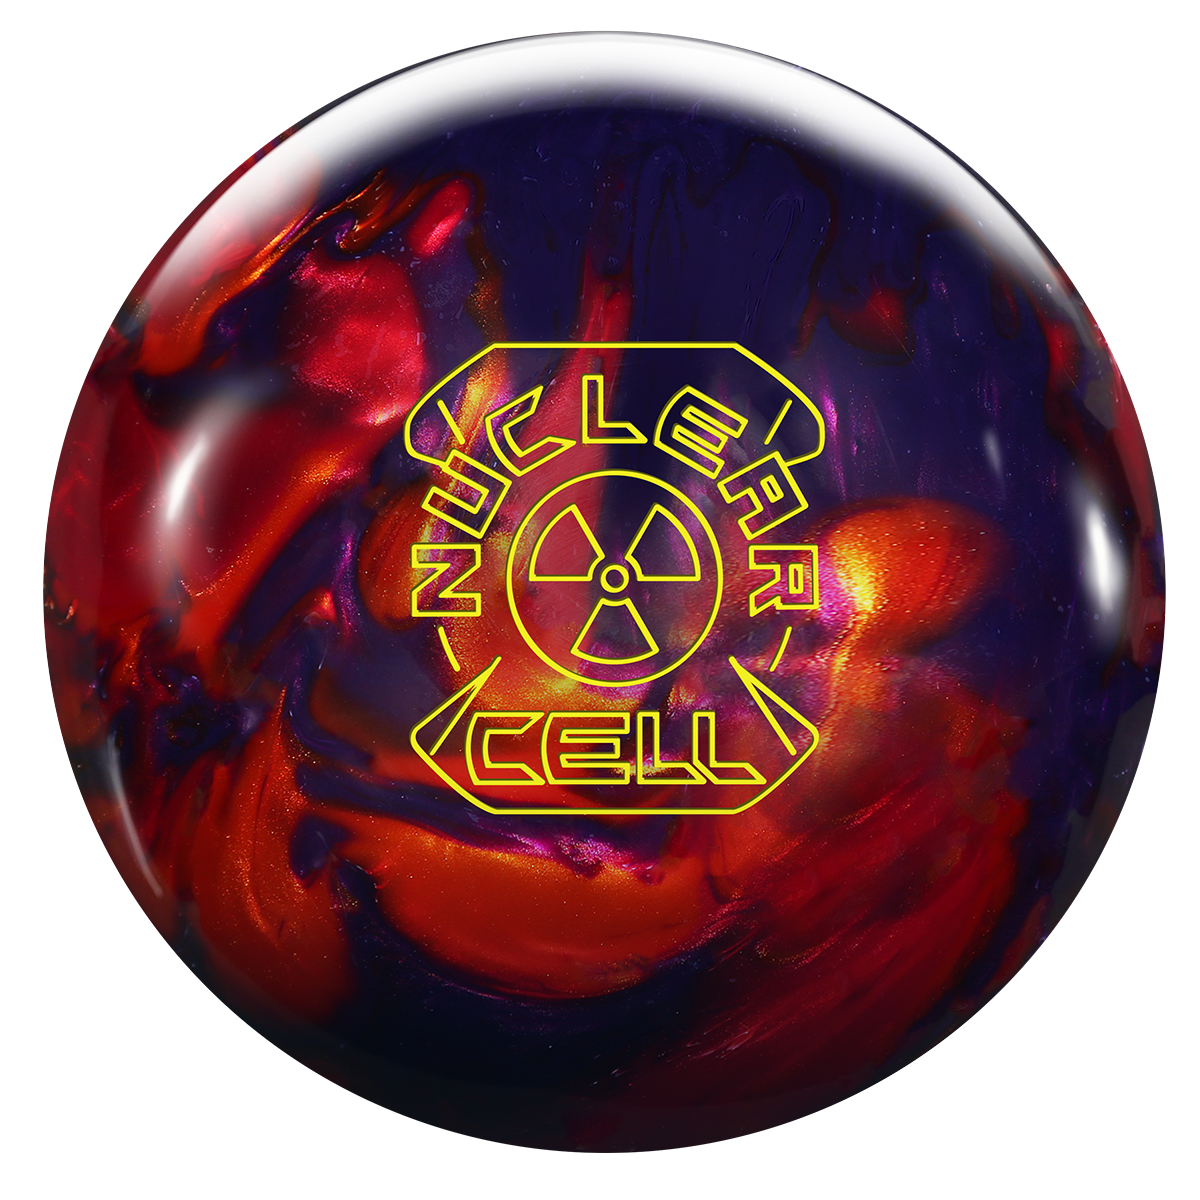 Roto Grip Nuclear Cell Bowling Ball